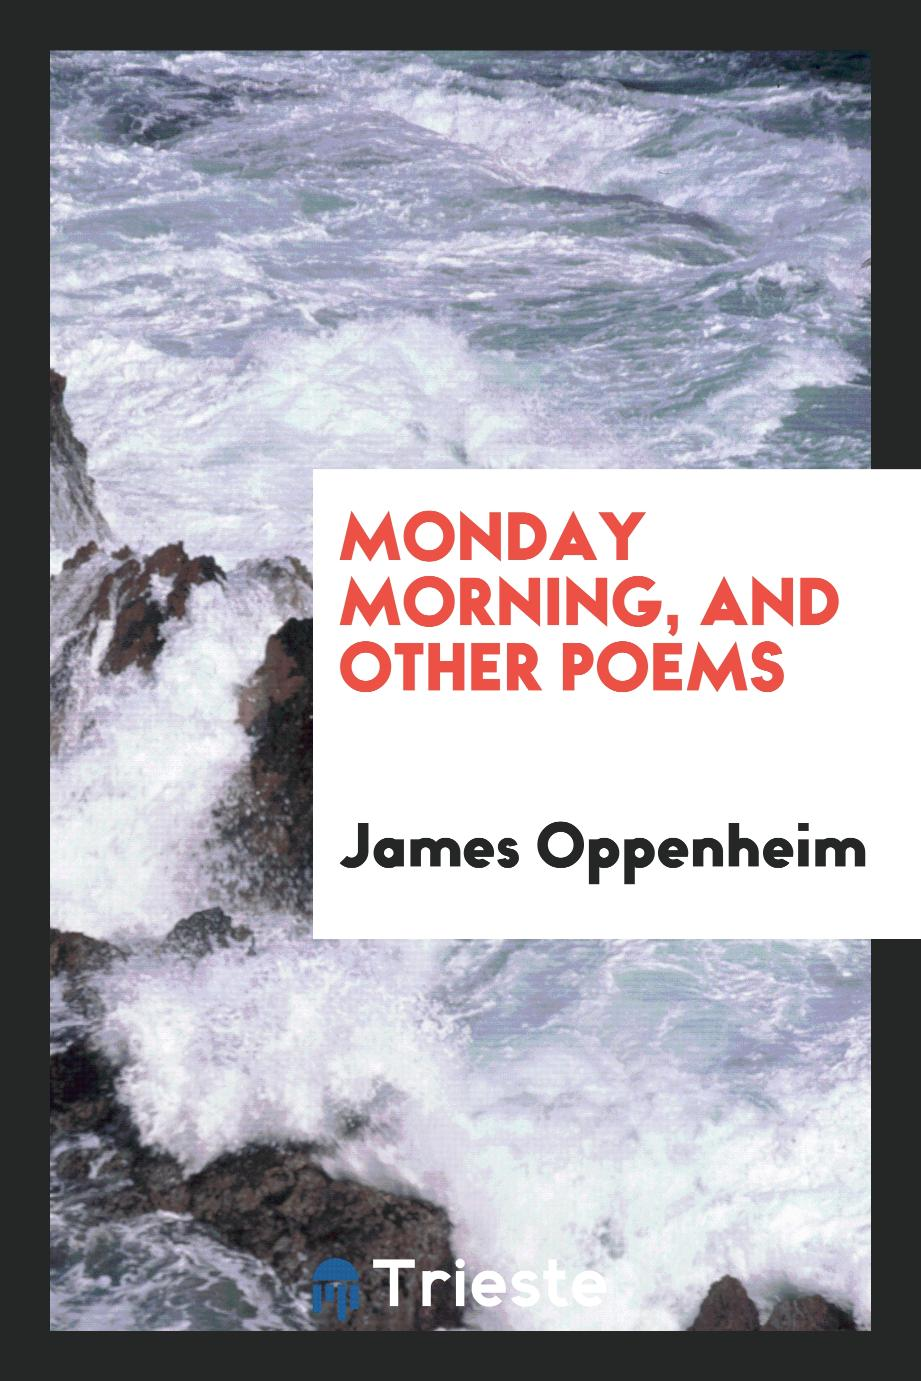 Monday Morning, and Other Poems